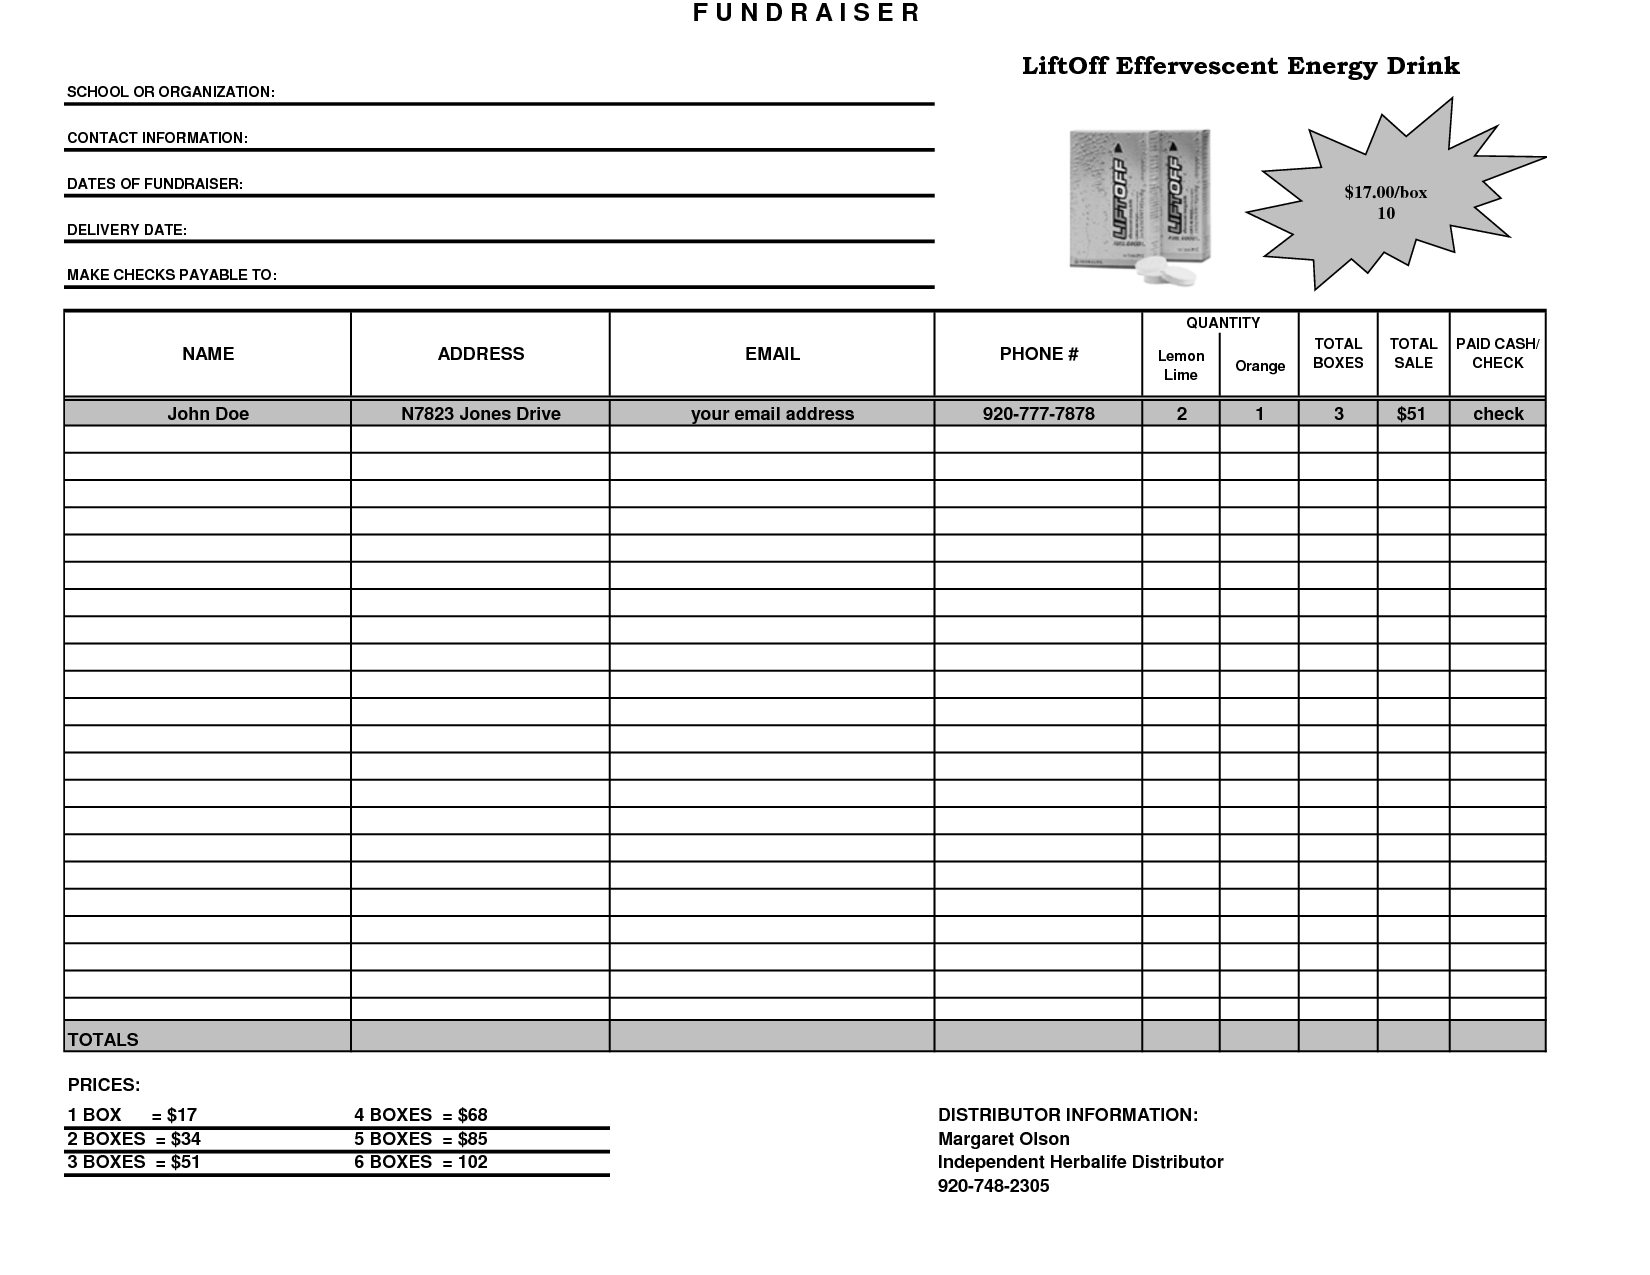 Captivating Fundraiser Template Excel Fundraiser Order Form Template Regarding Fundraising Form Template